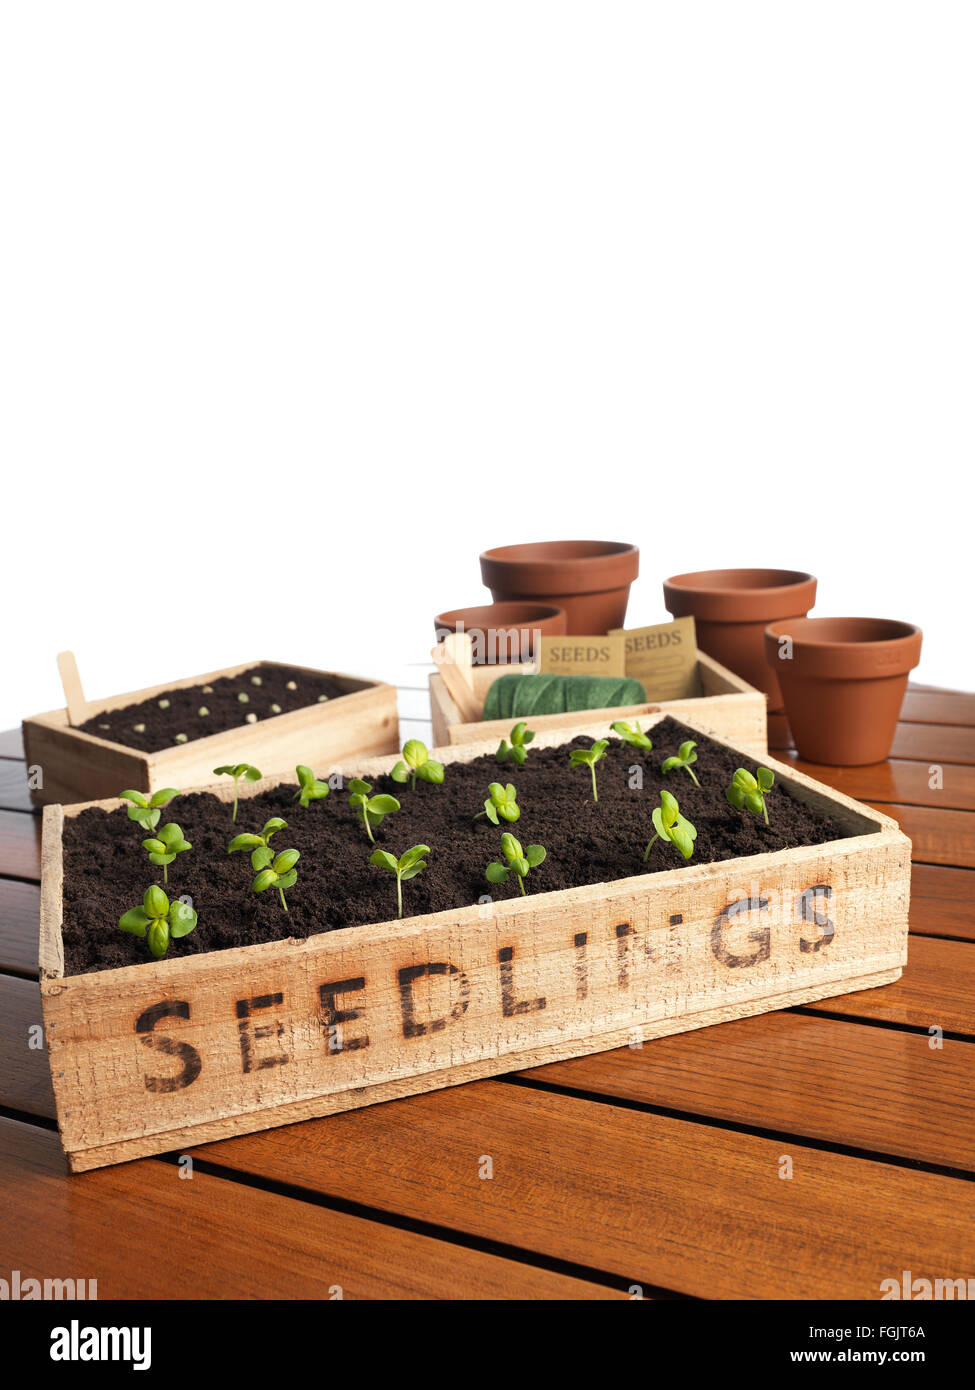 Seedling tray filled with organic soil and plants - Stock Image